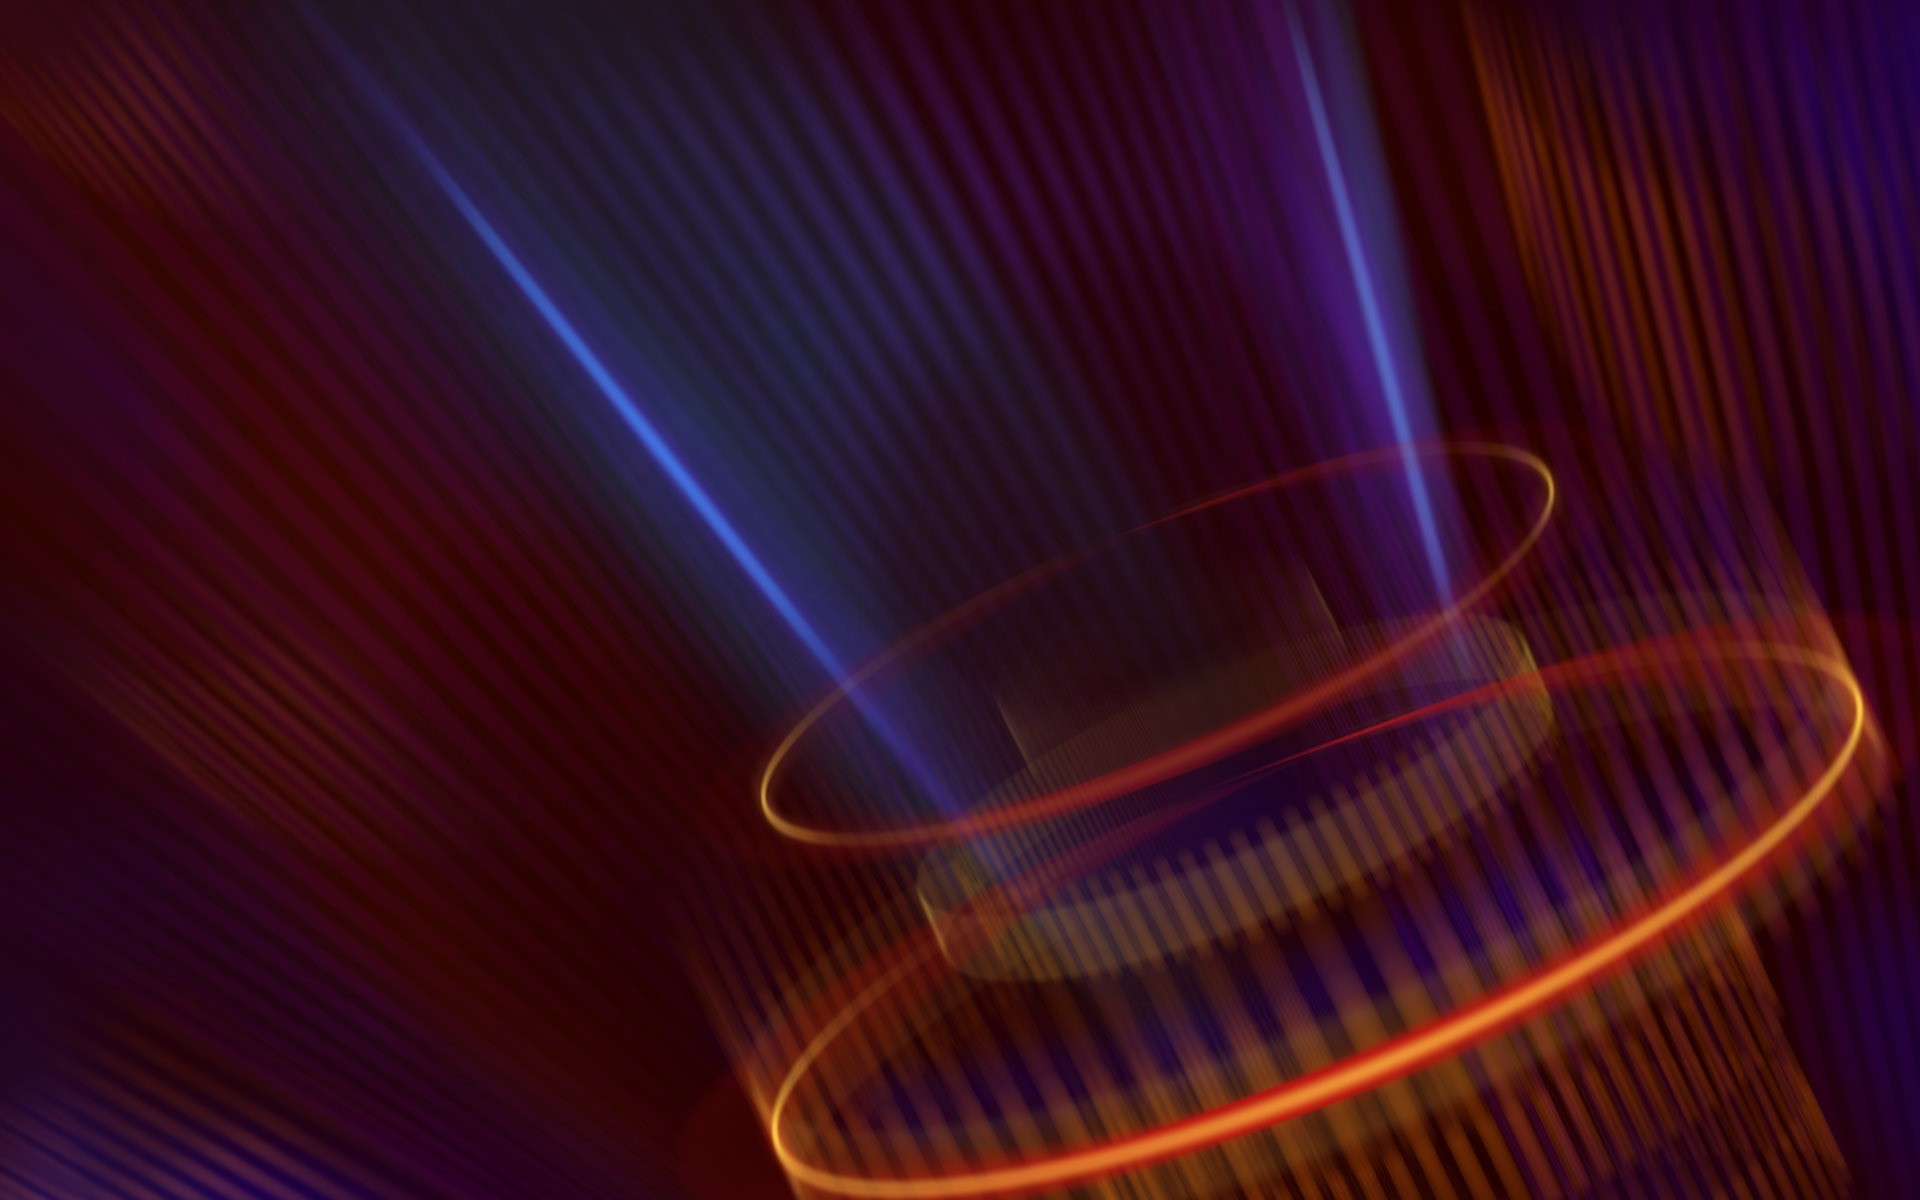 Res: 1920x1200, Wallpaper-3d-graphics-abstraction-space-hologram-projection-holography .